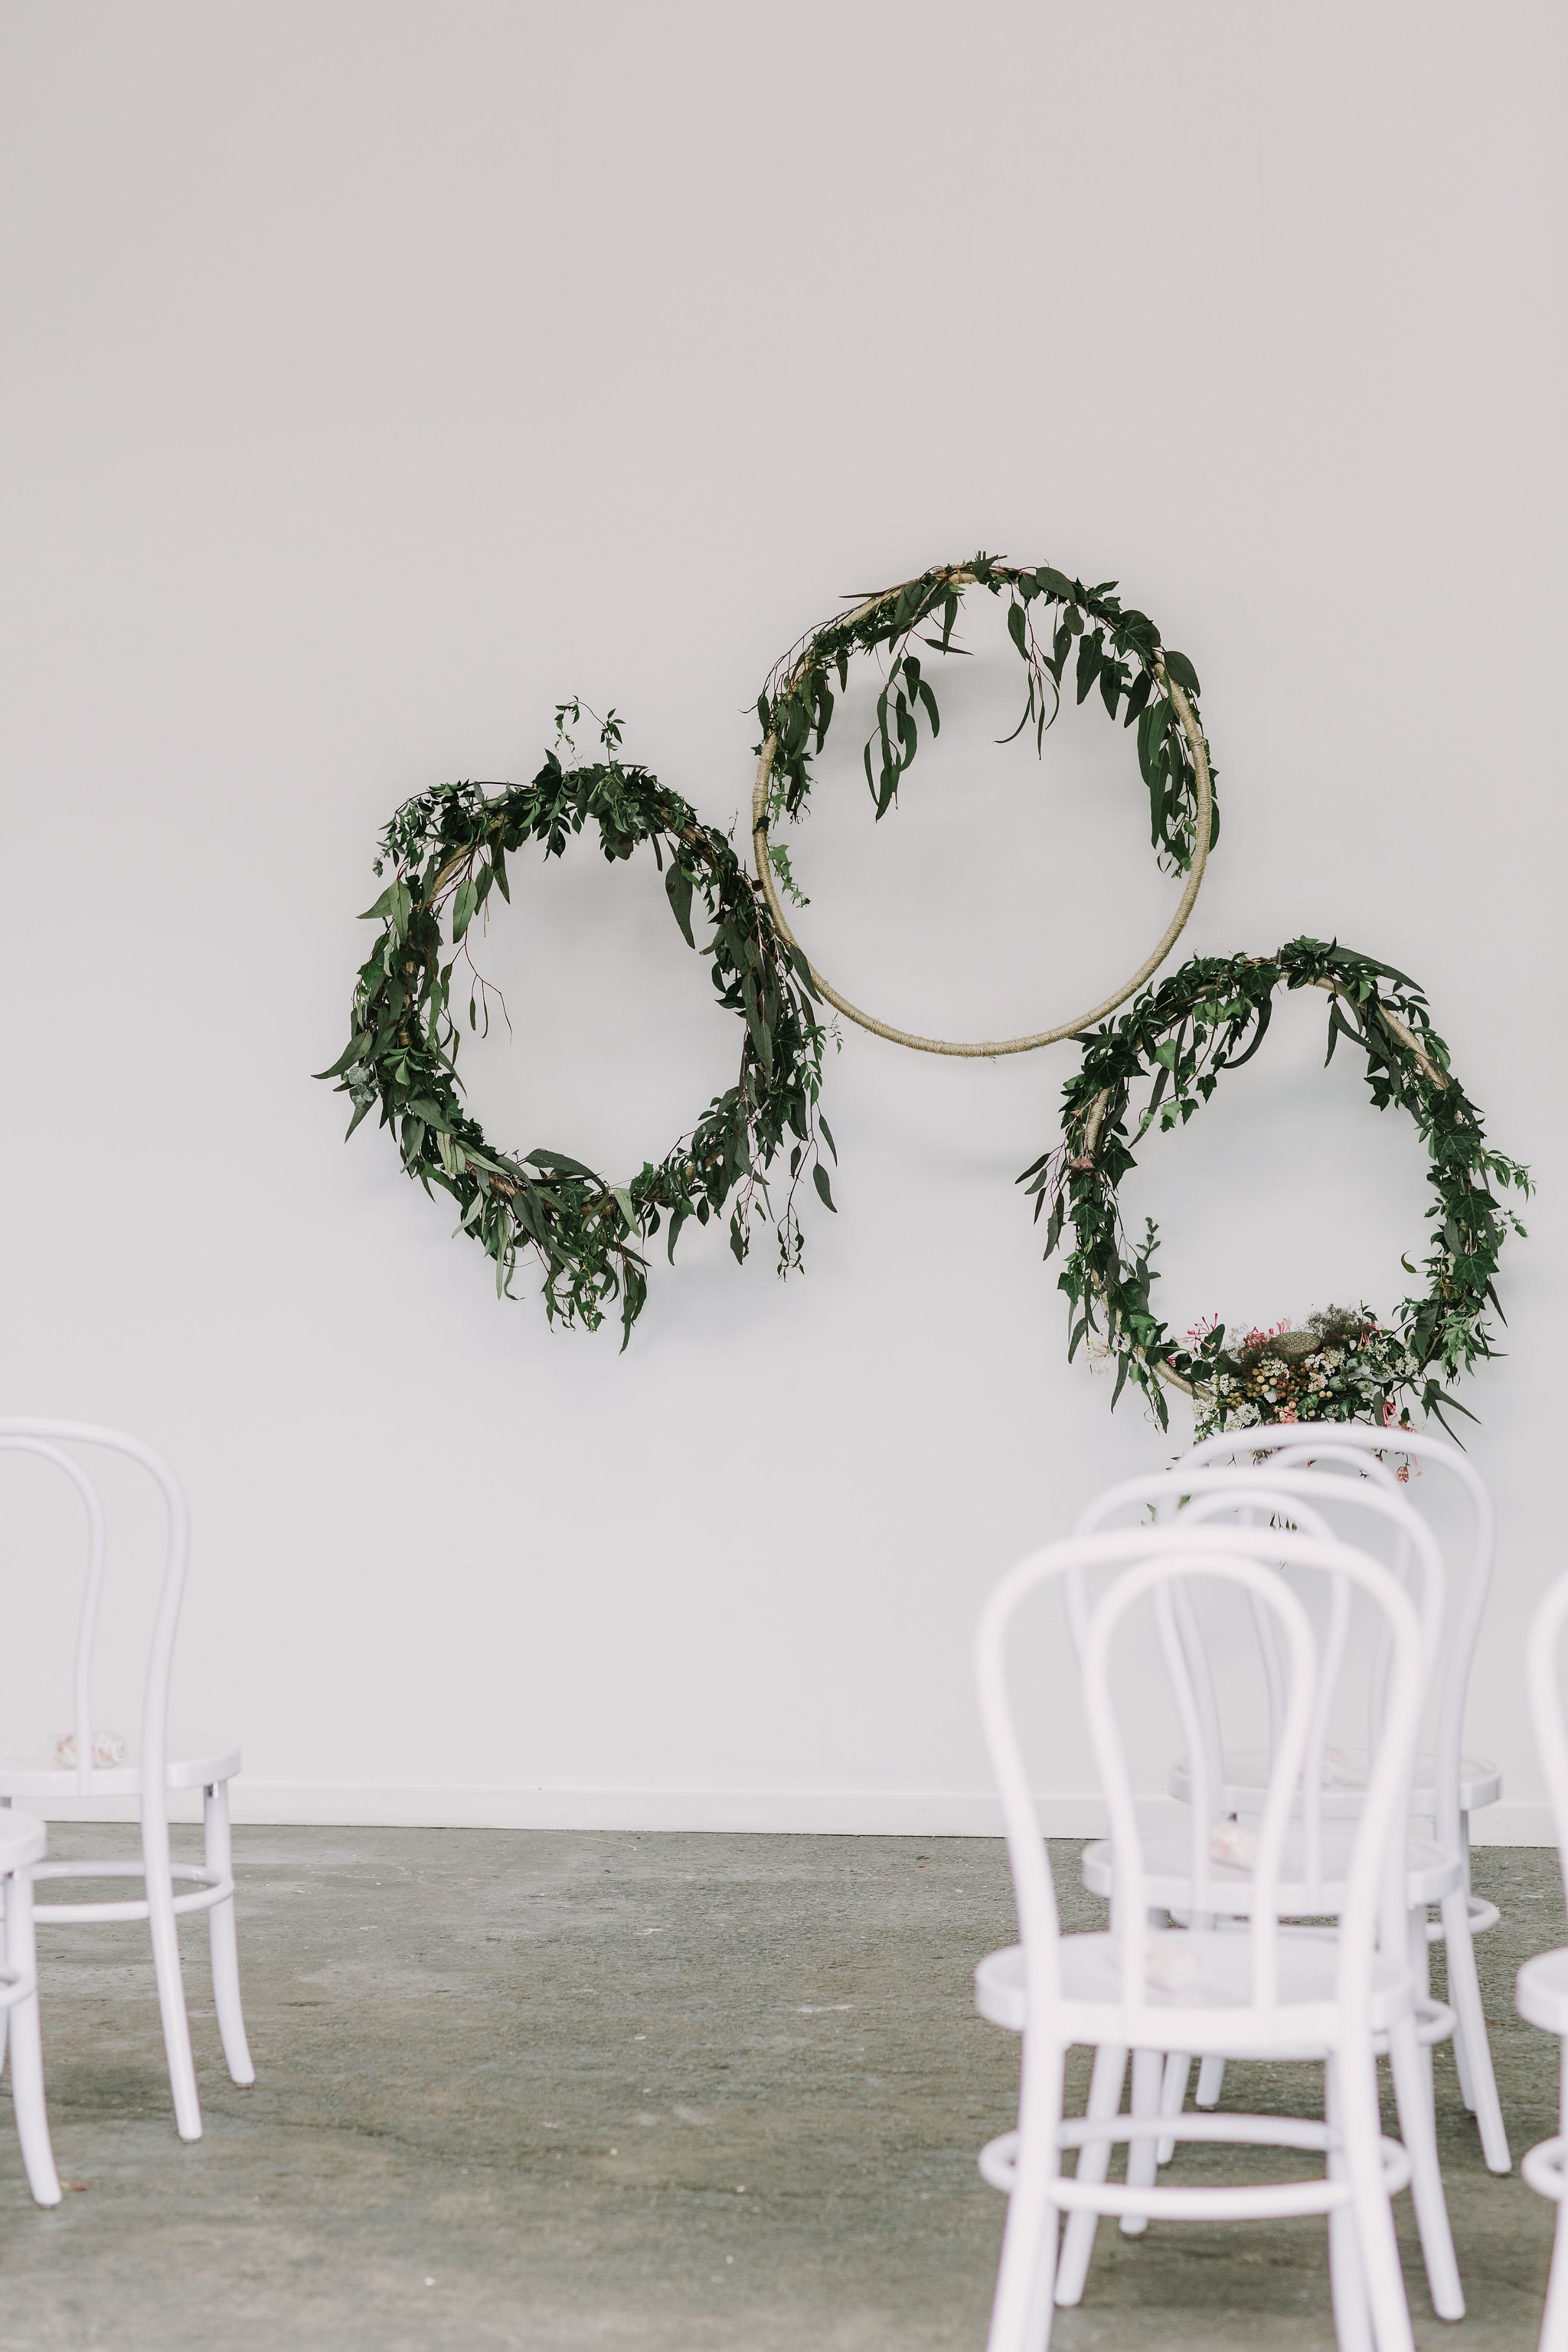 Native Australian flora add a simple, natural look to this ceremony backdrop at The Nook. Image credit:  Anitra Wells Photography.